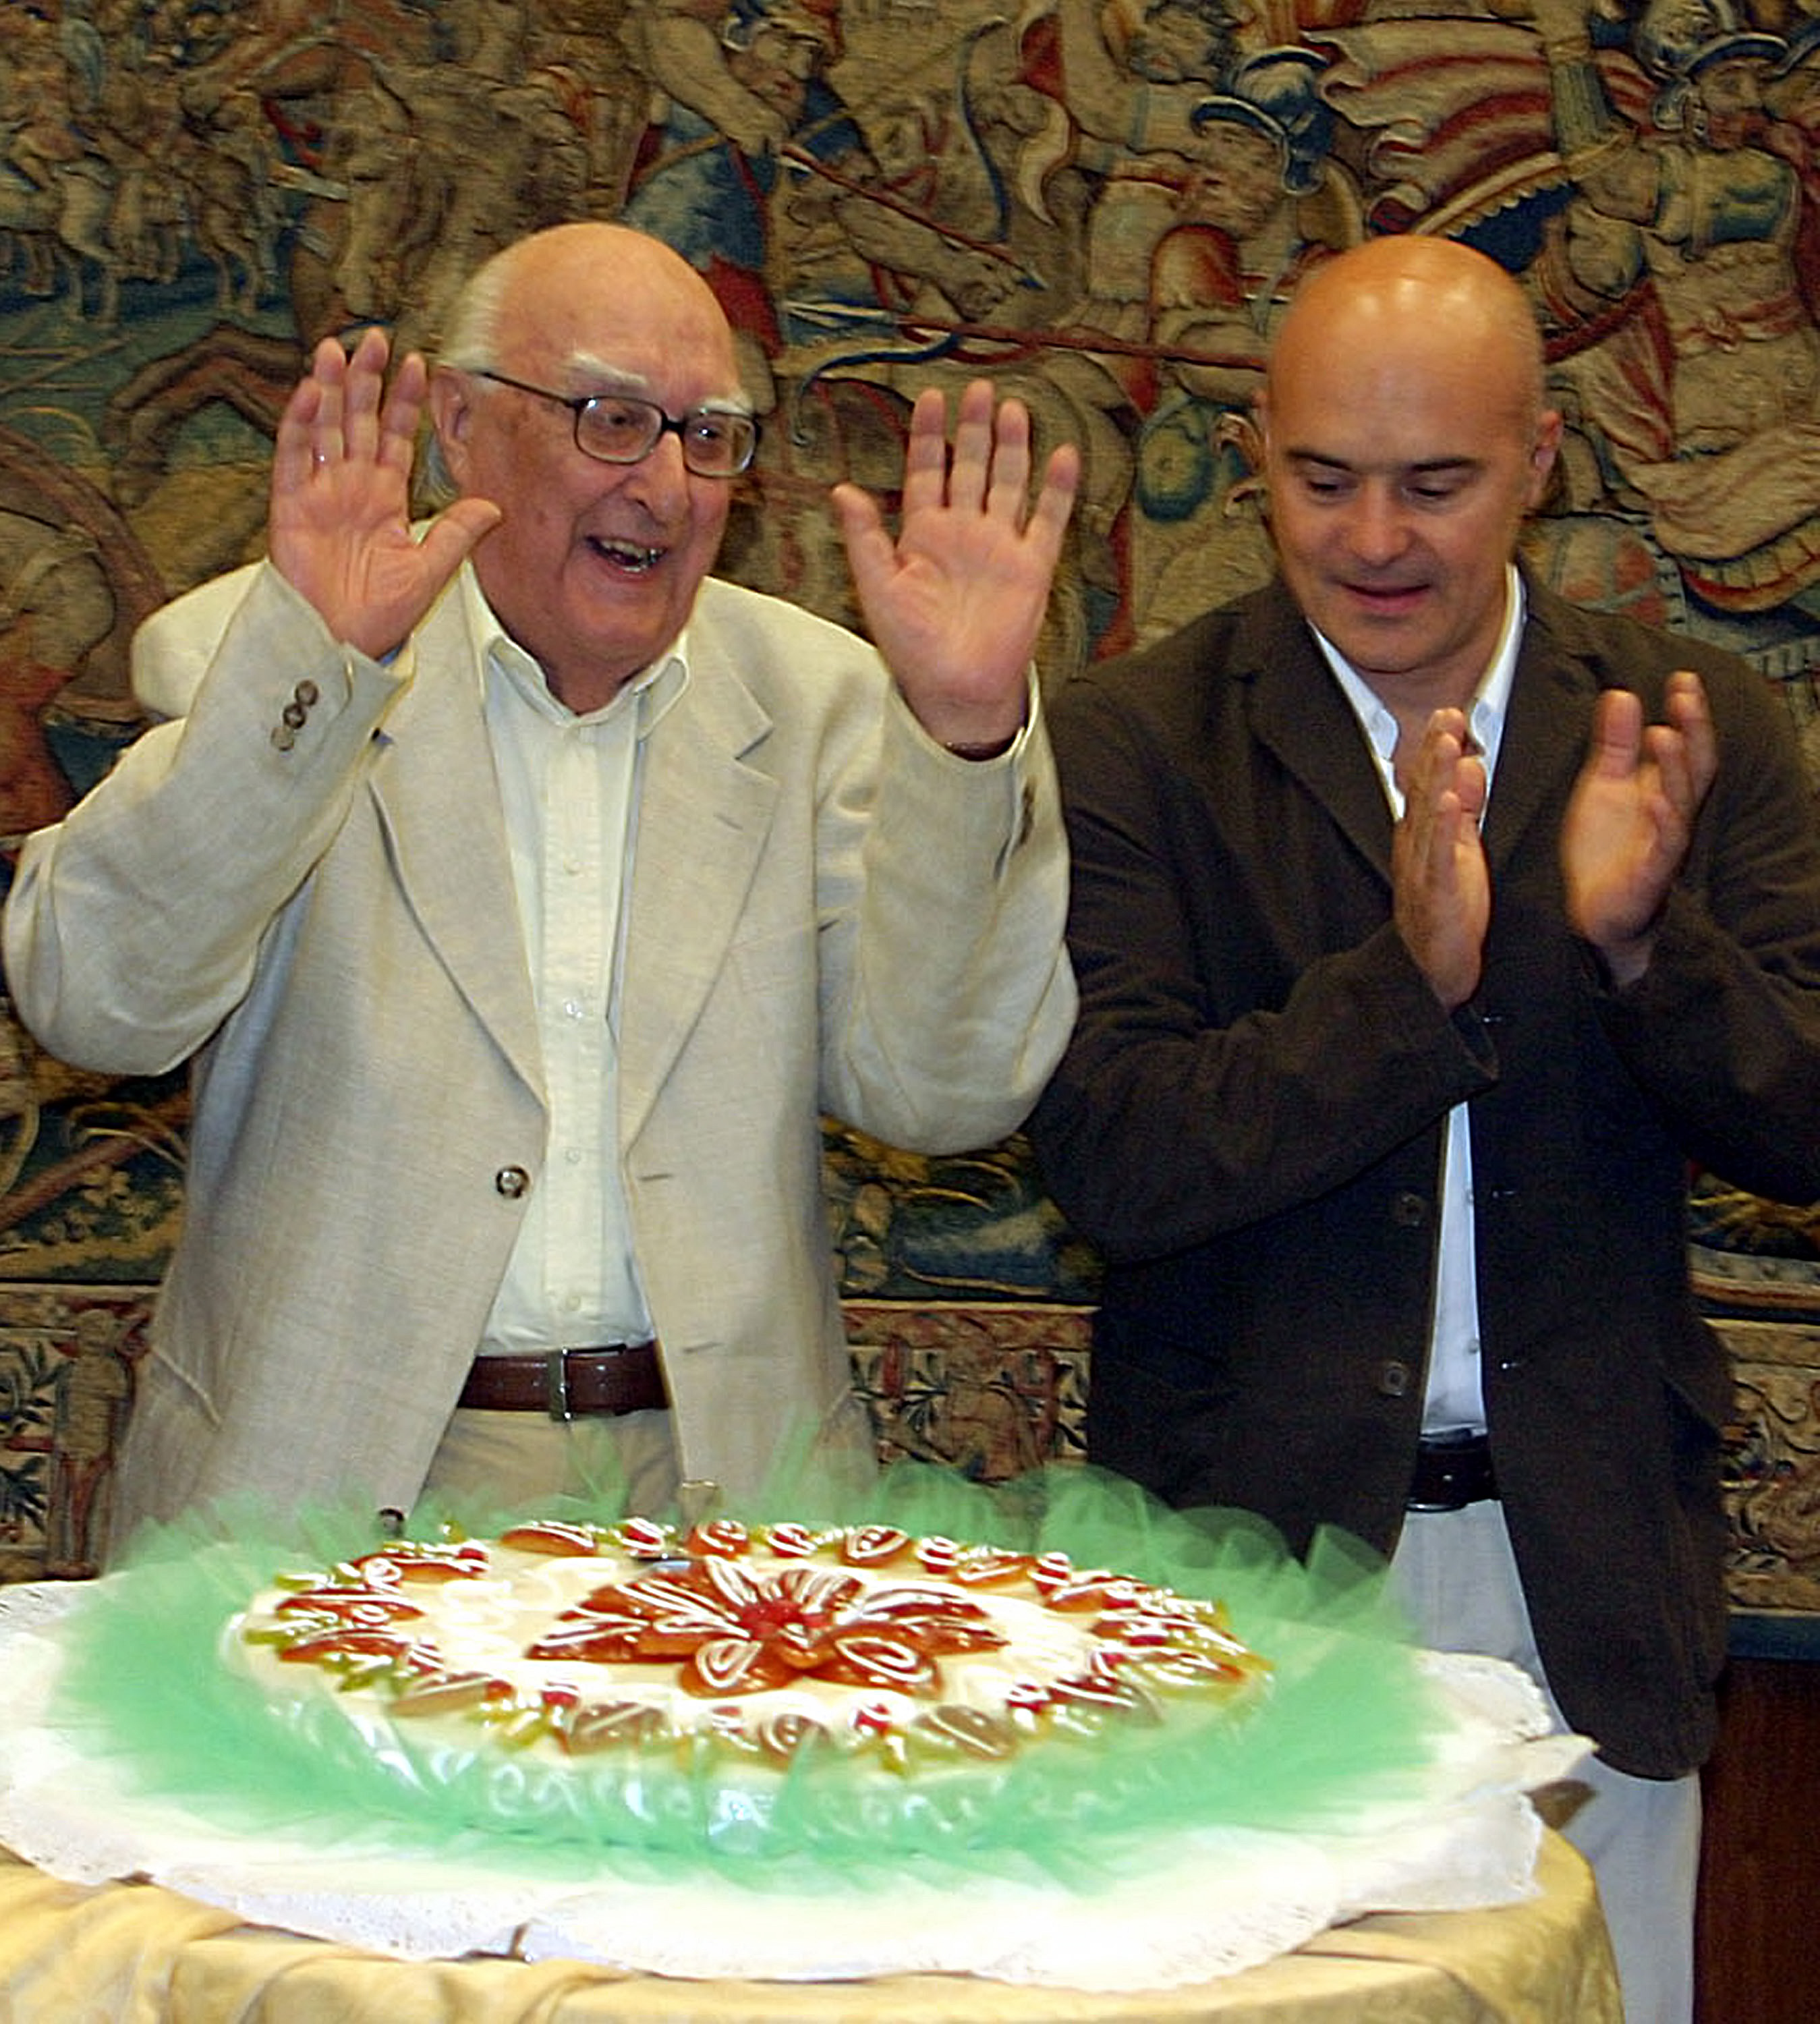 FILE - In this Sept. 14, 2005 file photo, Italian author Andrea Camilleri, left, flanked by actor Luca Zingaretti, celebrates his 80th birthday, at the RAI headquarters, in Rome.(AP Photo/Sandro Pace, file)